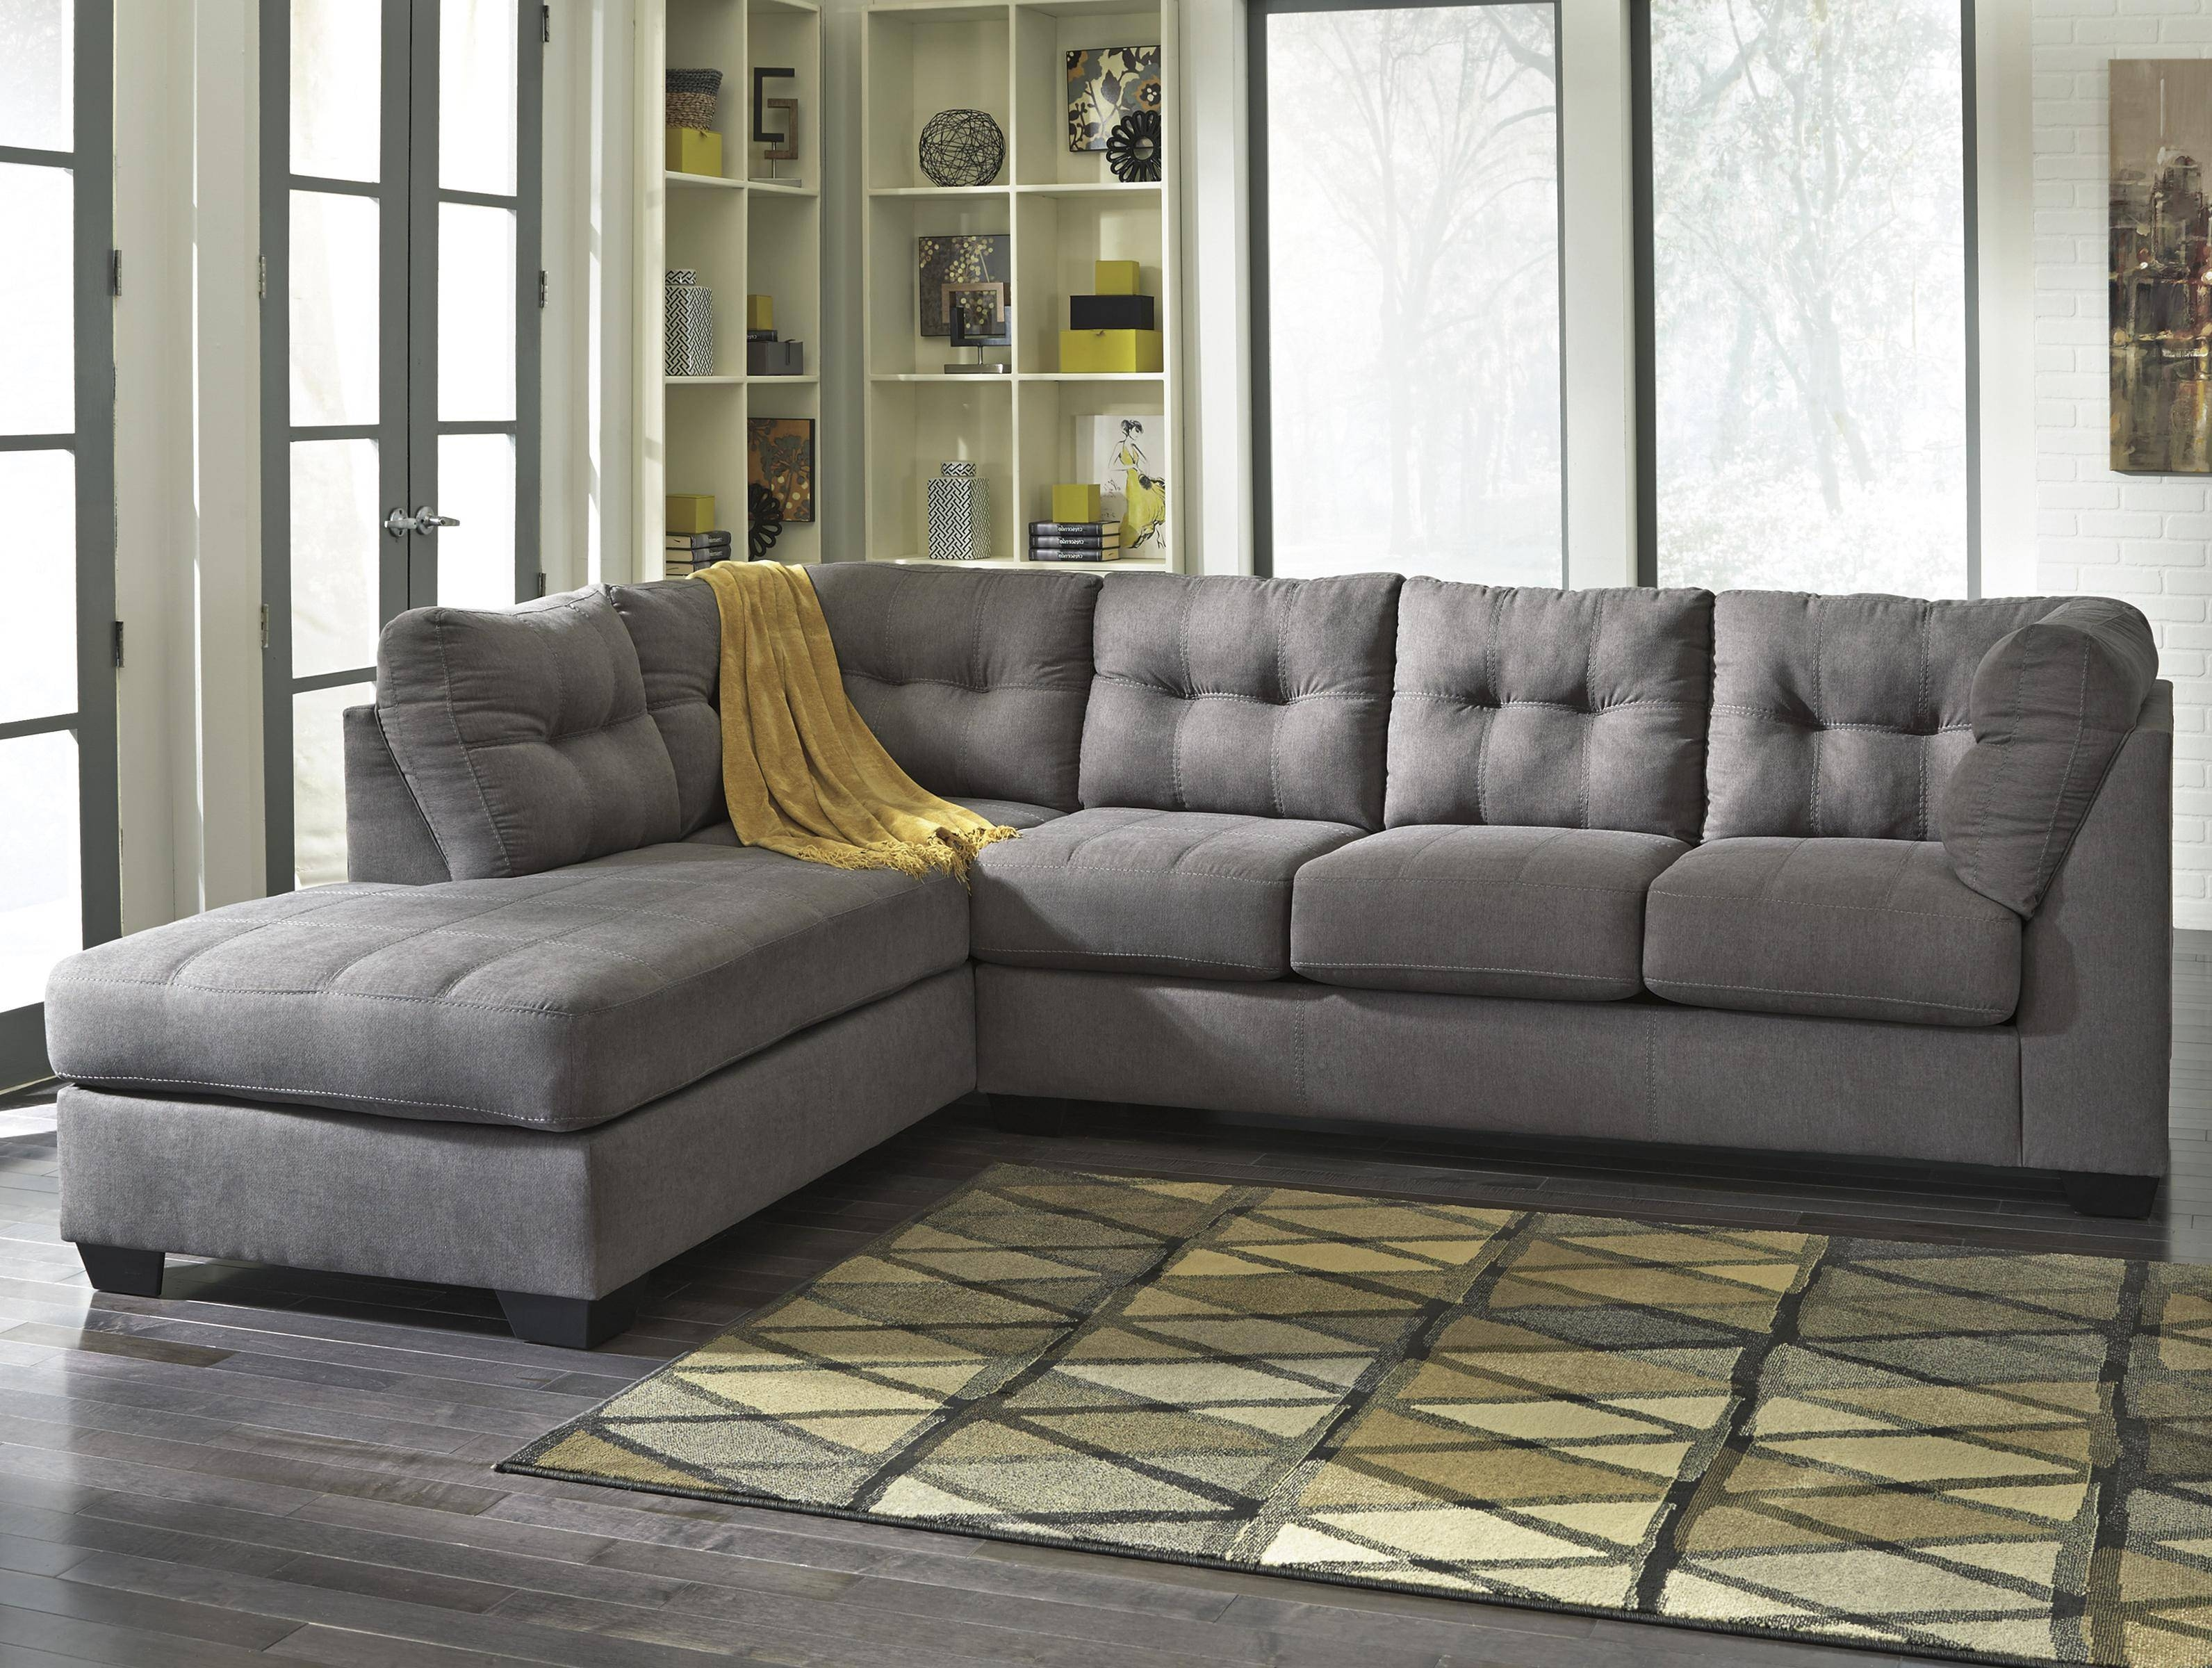 Benchcraft Maier - Charcoal 2-Piece Sectional With Left Chaise throughout 3 Piece Sectional Sleeper Sofa (Image 11 of 30)